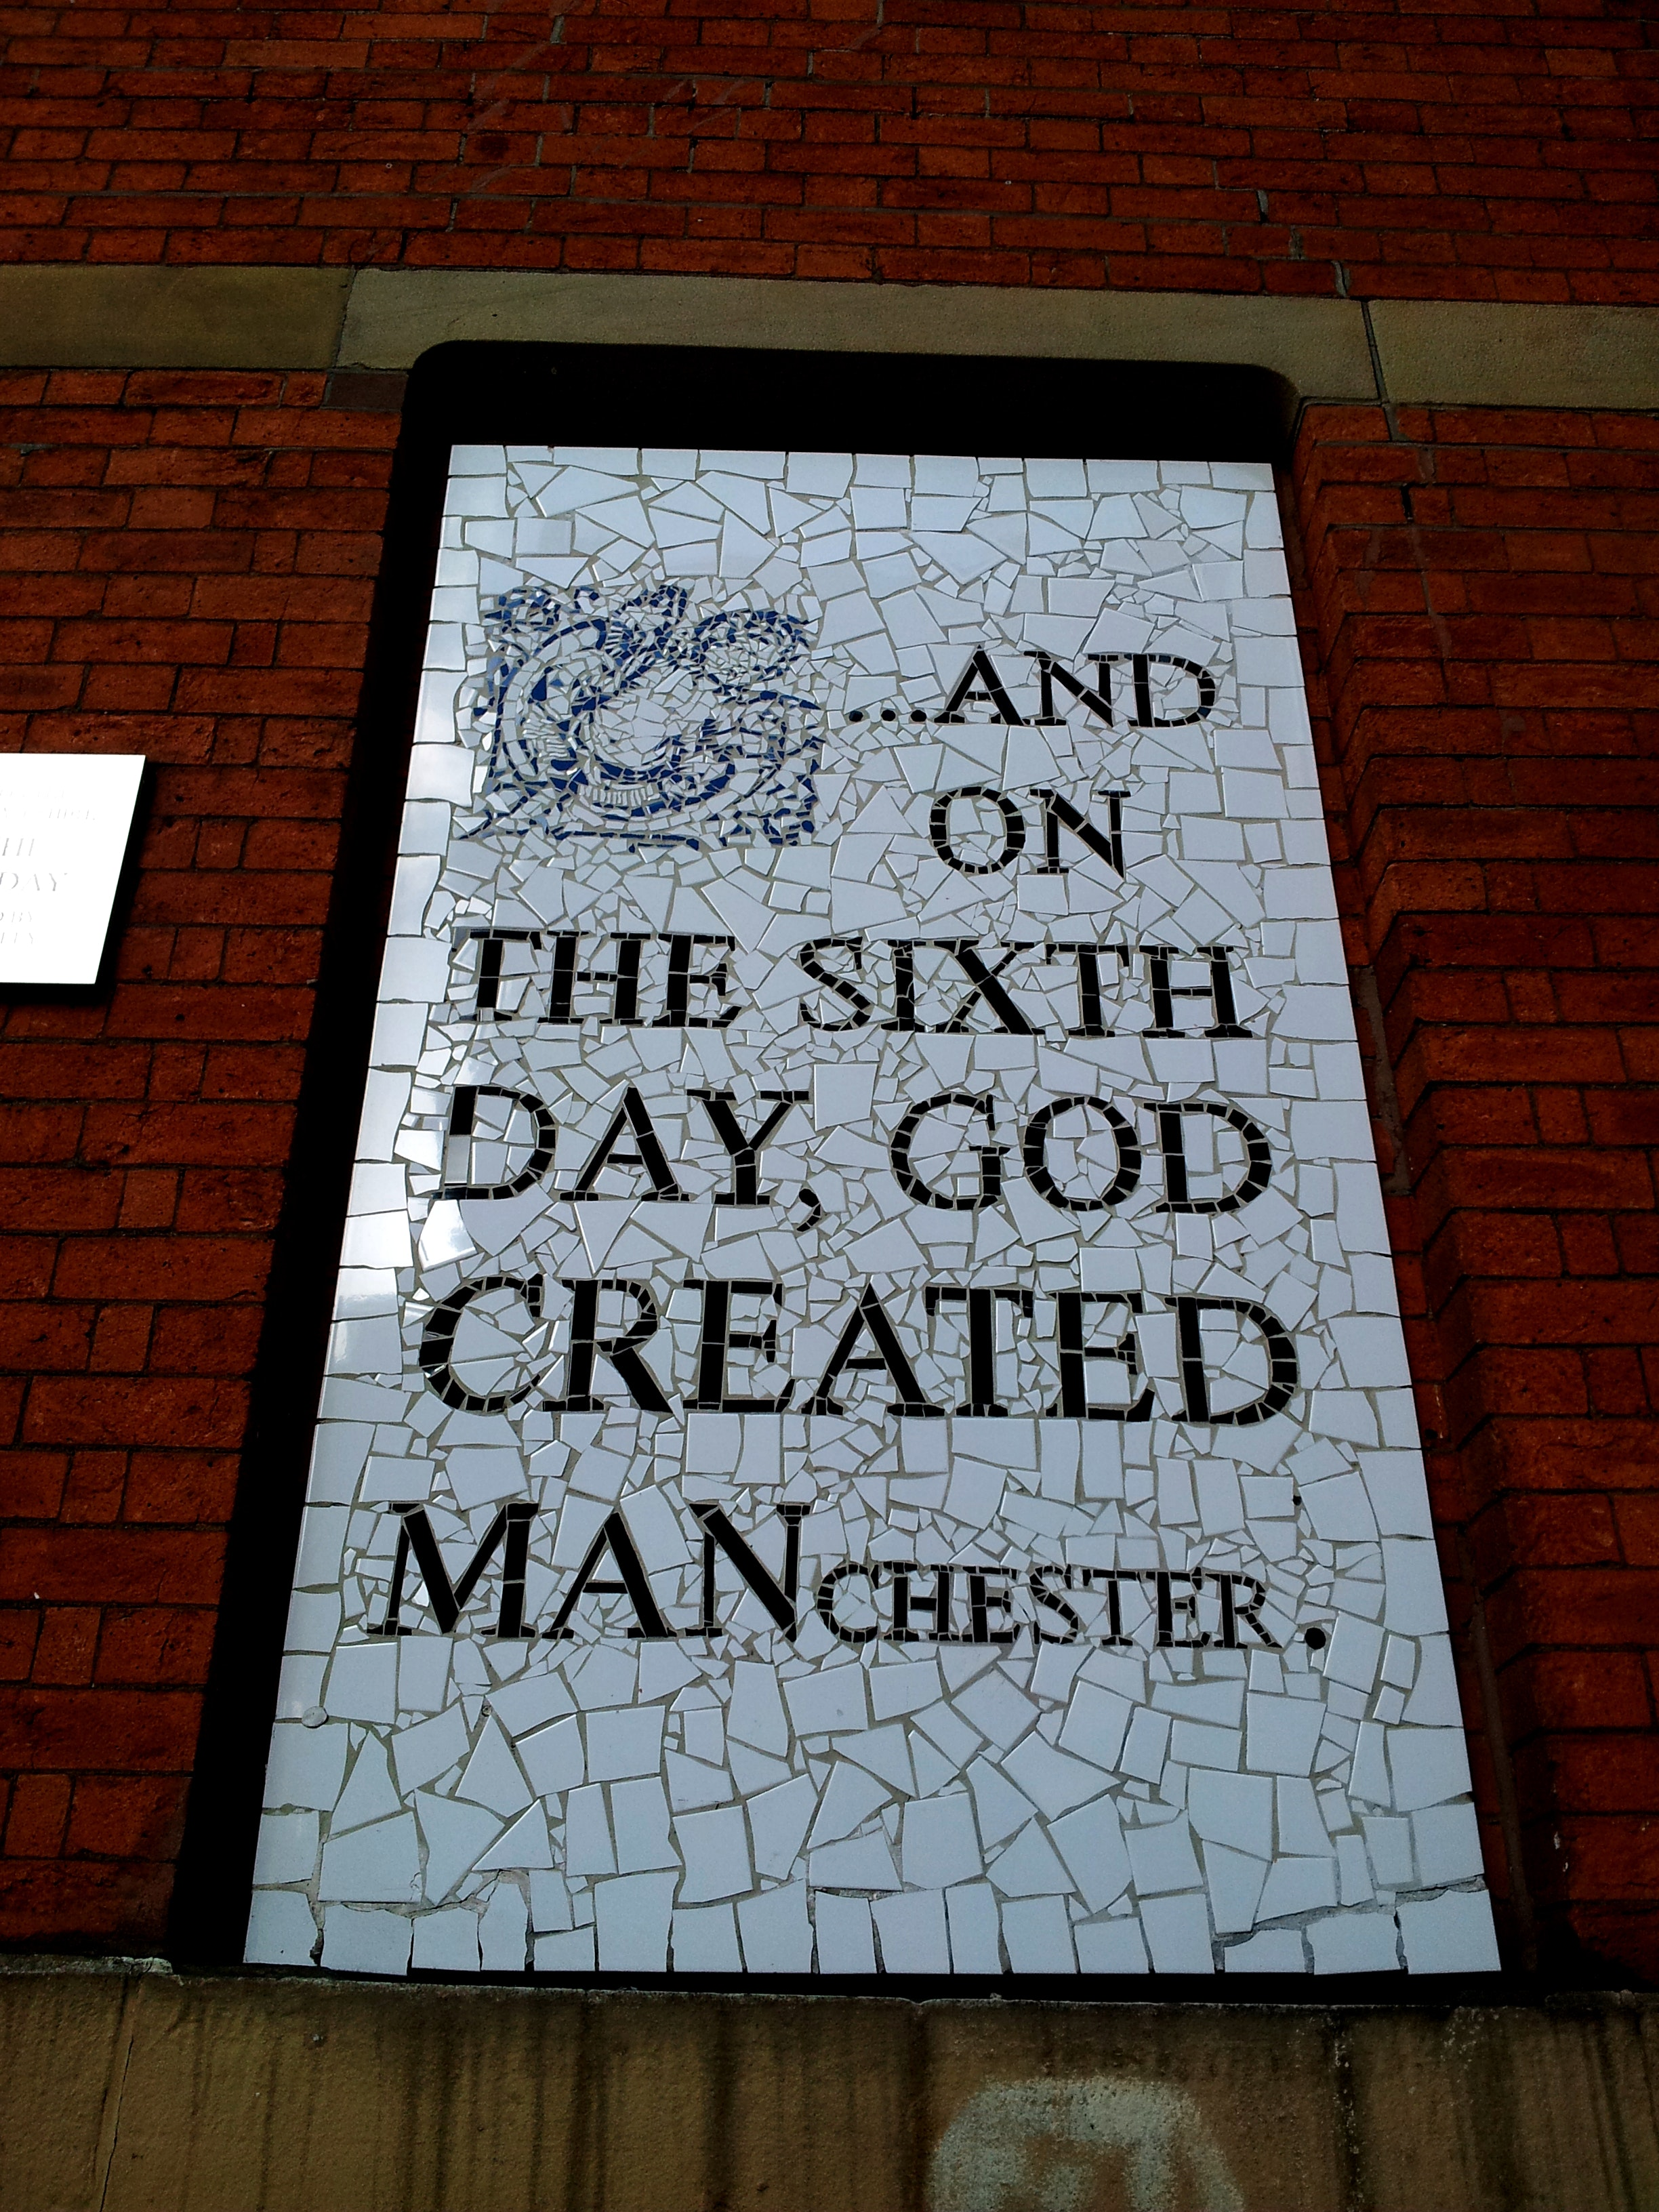 free stock photo of manchester city tour